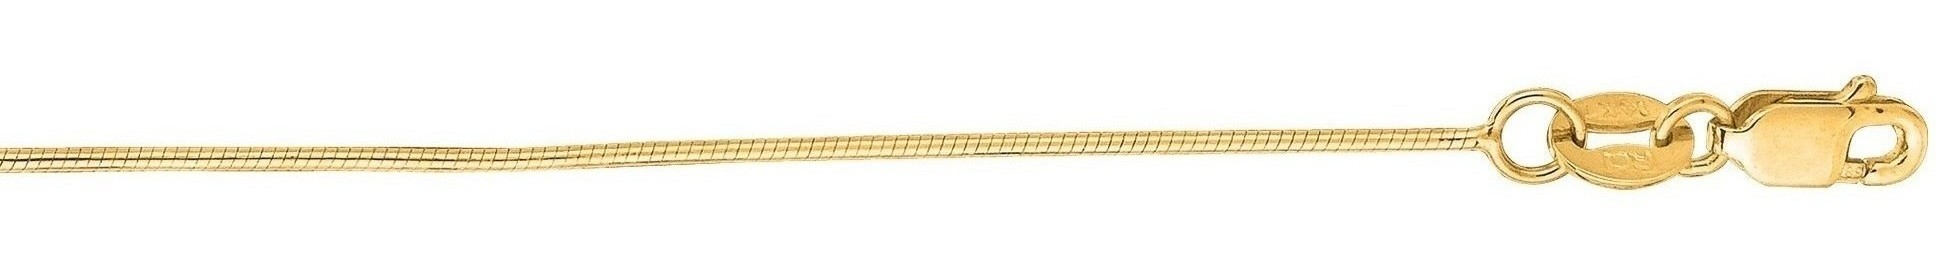 16 14K Yellow Gold 0.7mm (0.03) Polished Diamond Cut Round Snake Chain w/ Lobster Clasp